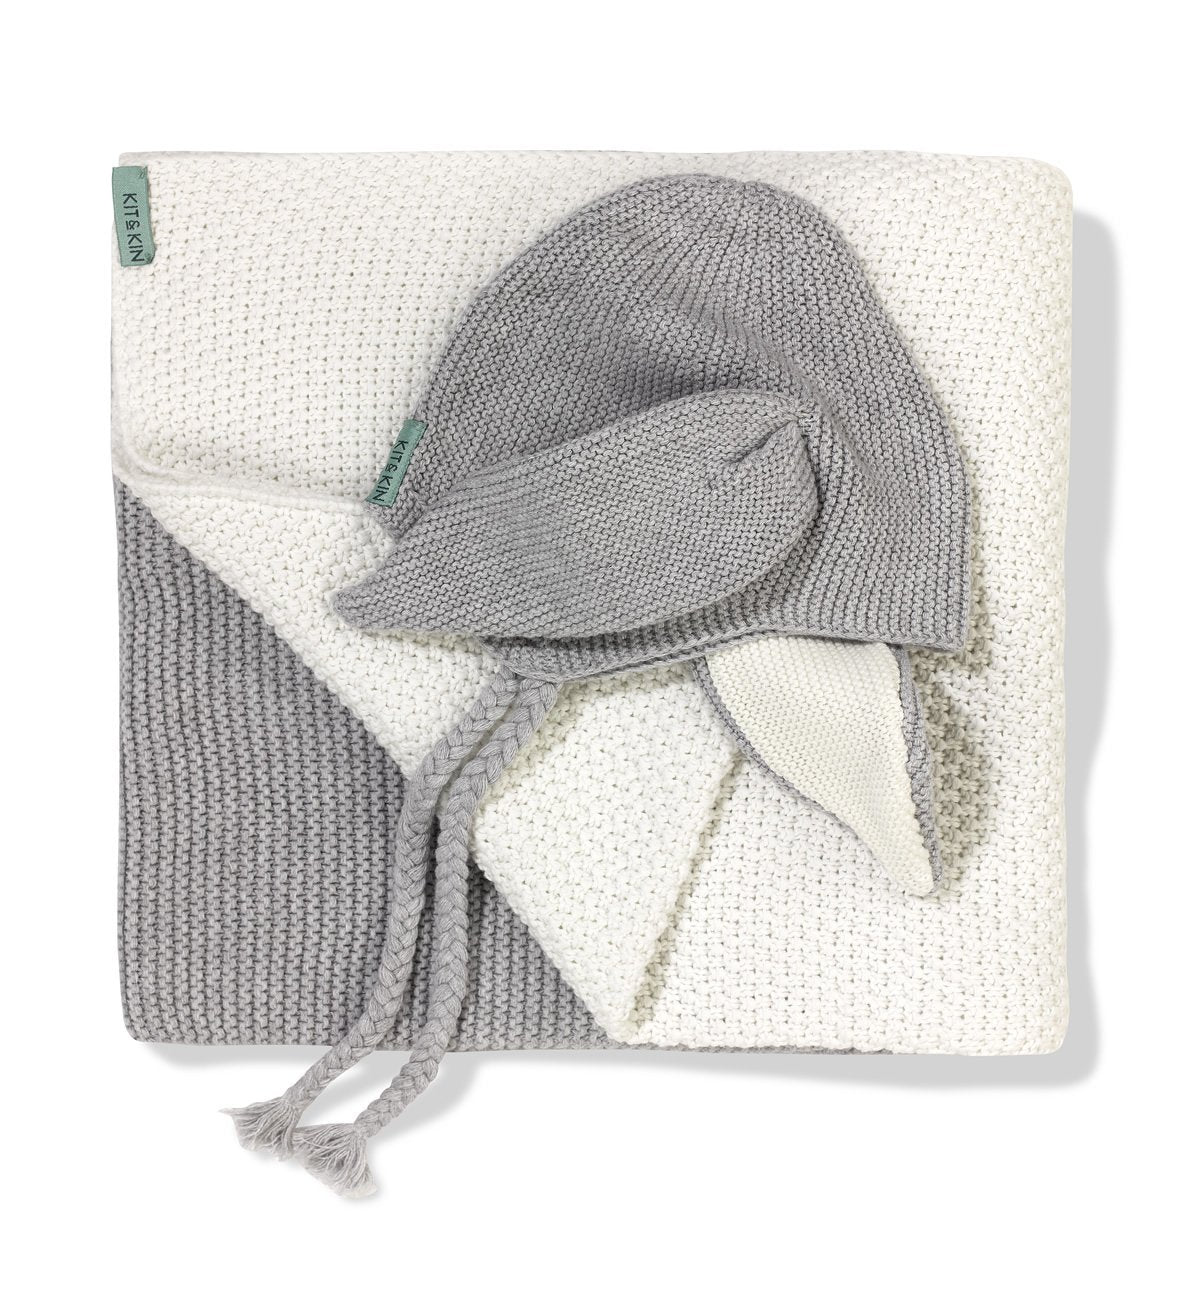 Sustainable grey hat and blanket bundle